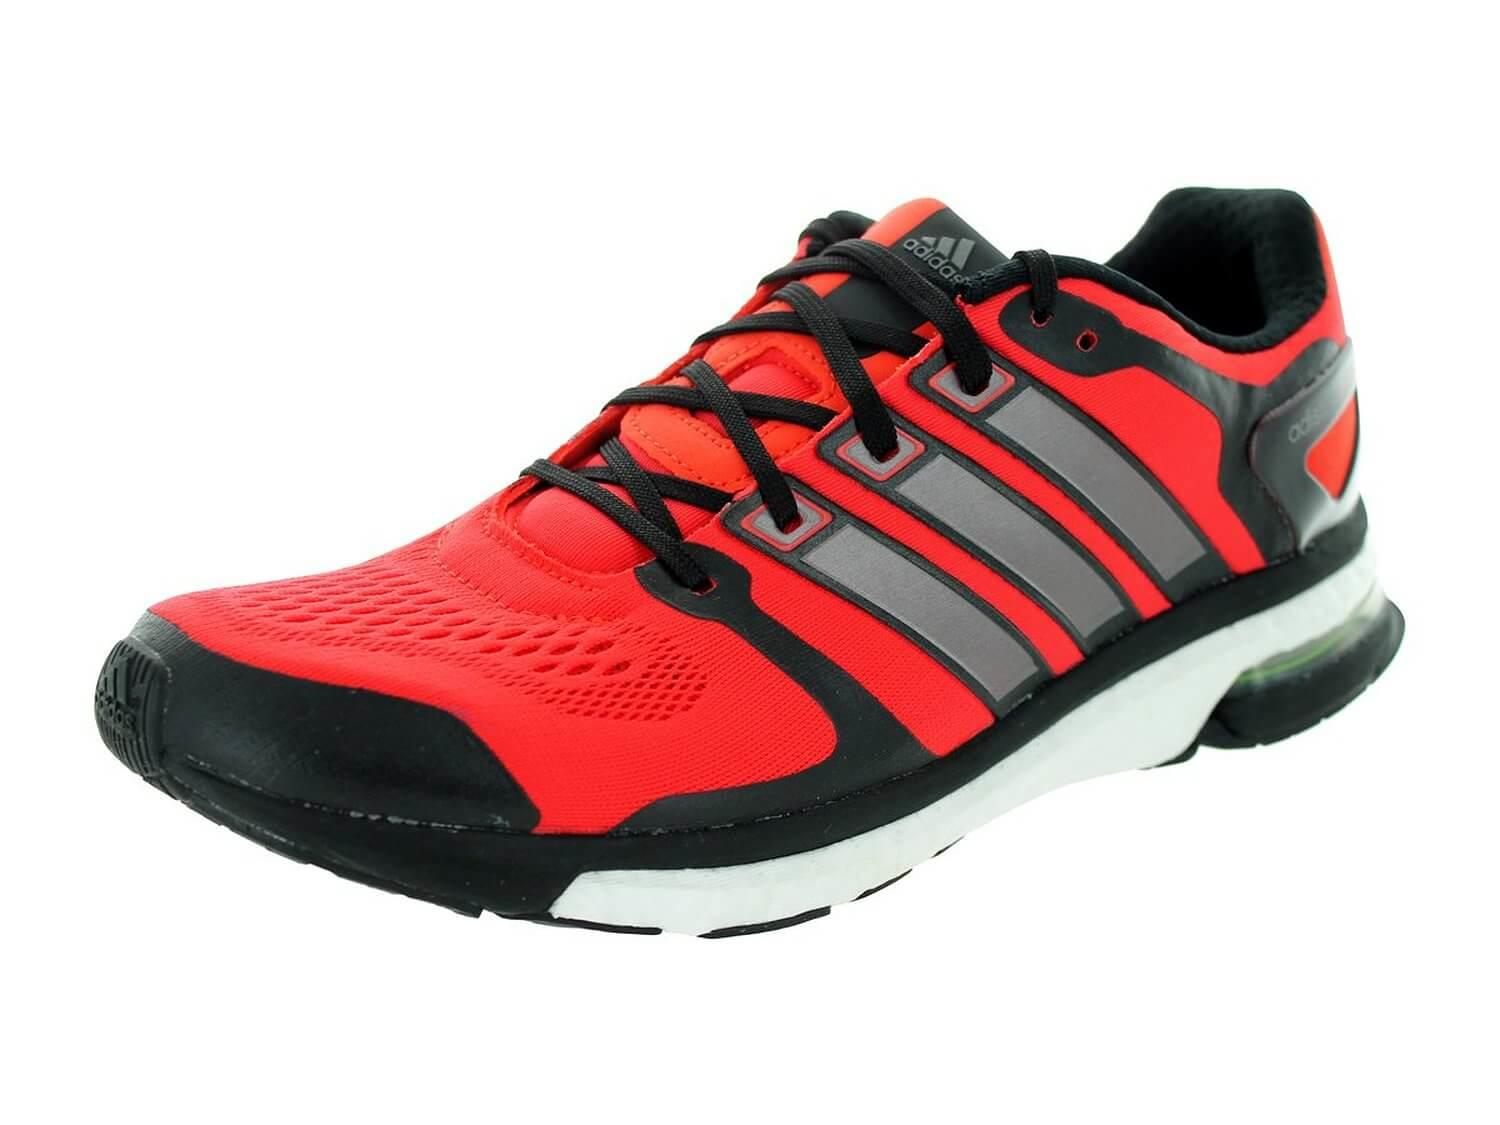 new arrival 2a3a6 eeea2 the Adidas Adistar Boost features great cushioning, flexibility, and  responsiveness ...